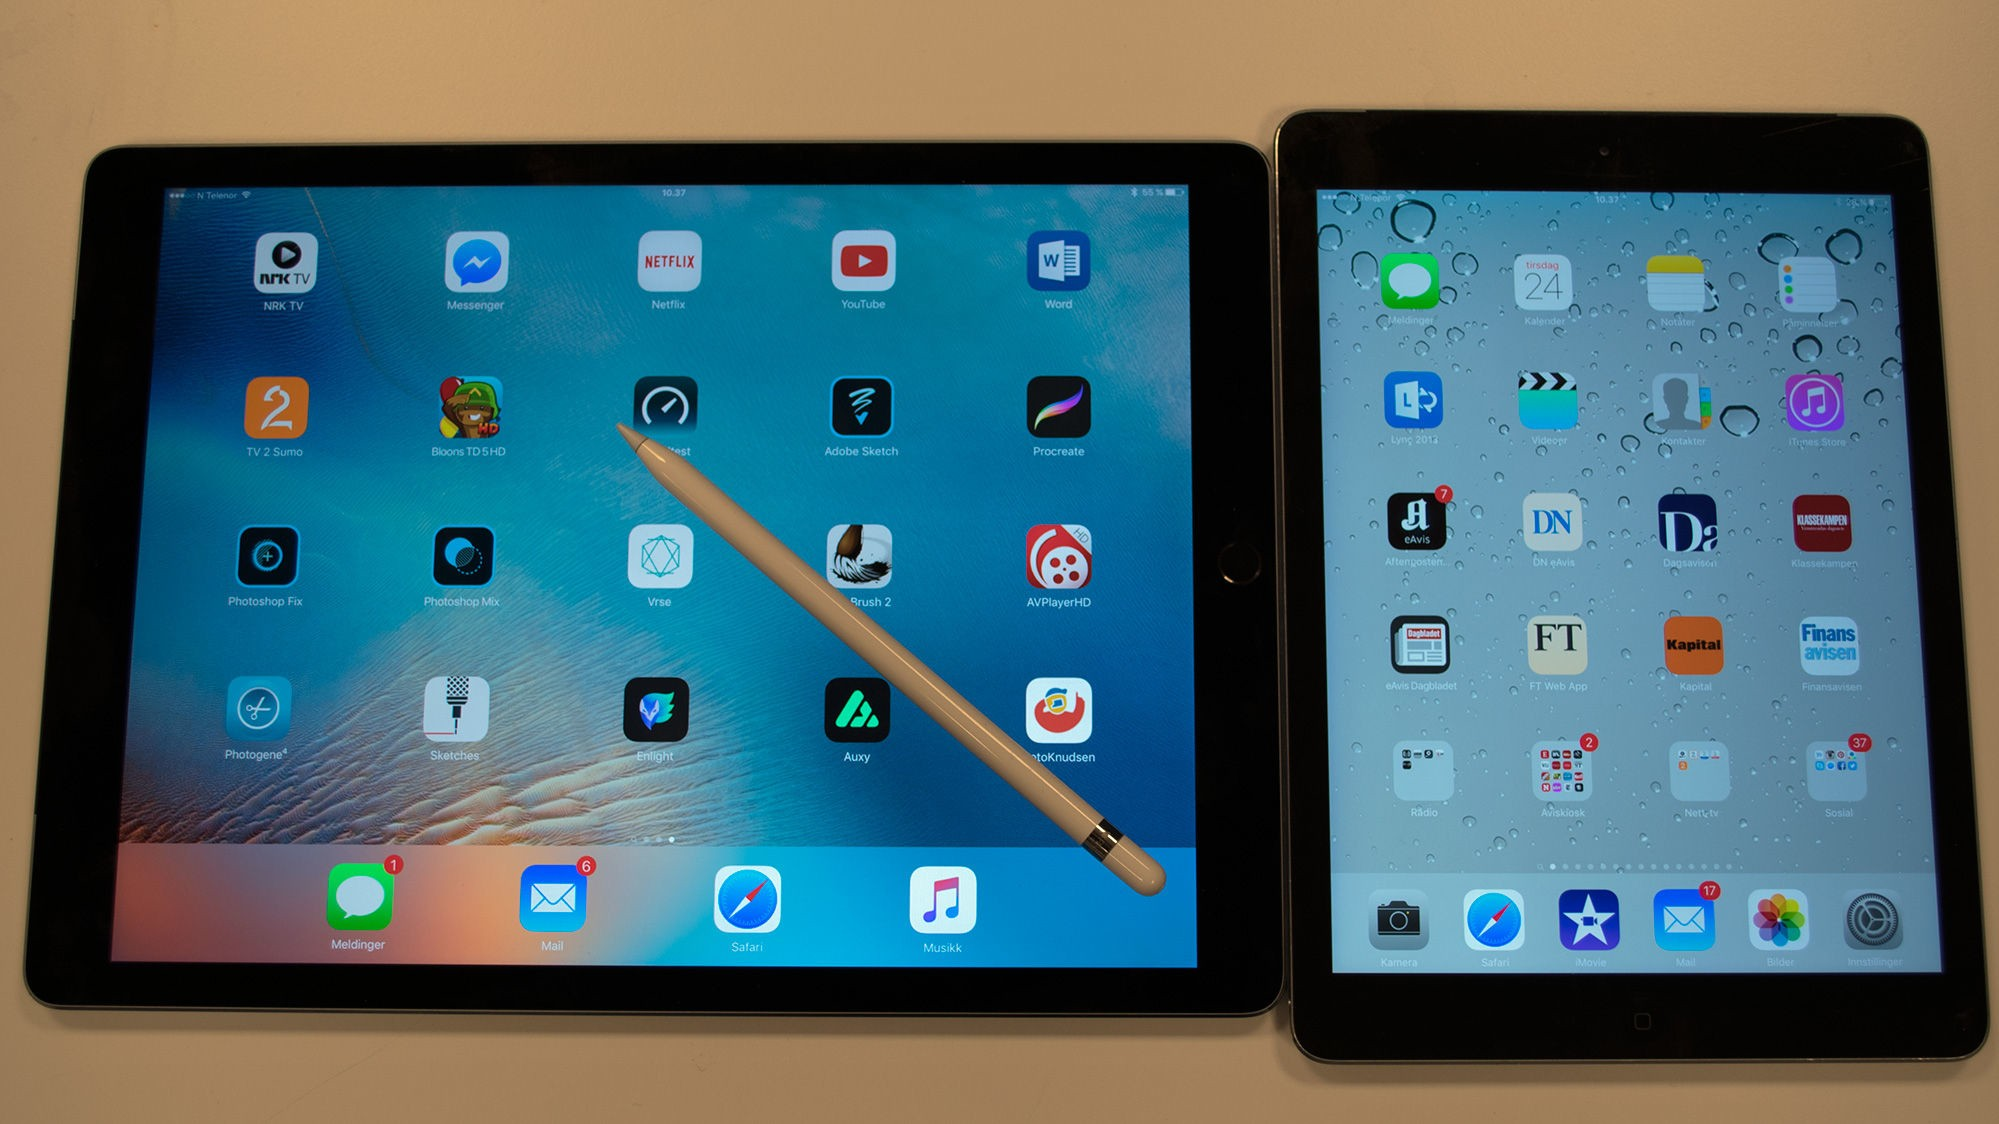 Apple ser et behov for en iPad som plasserer seg mellom den enorme iPad Pro og iPad Air 2.